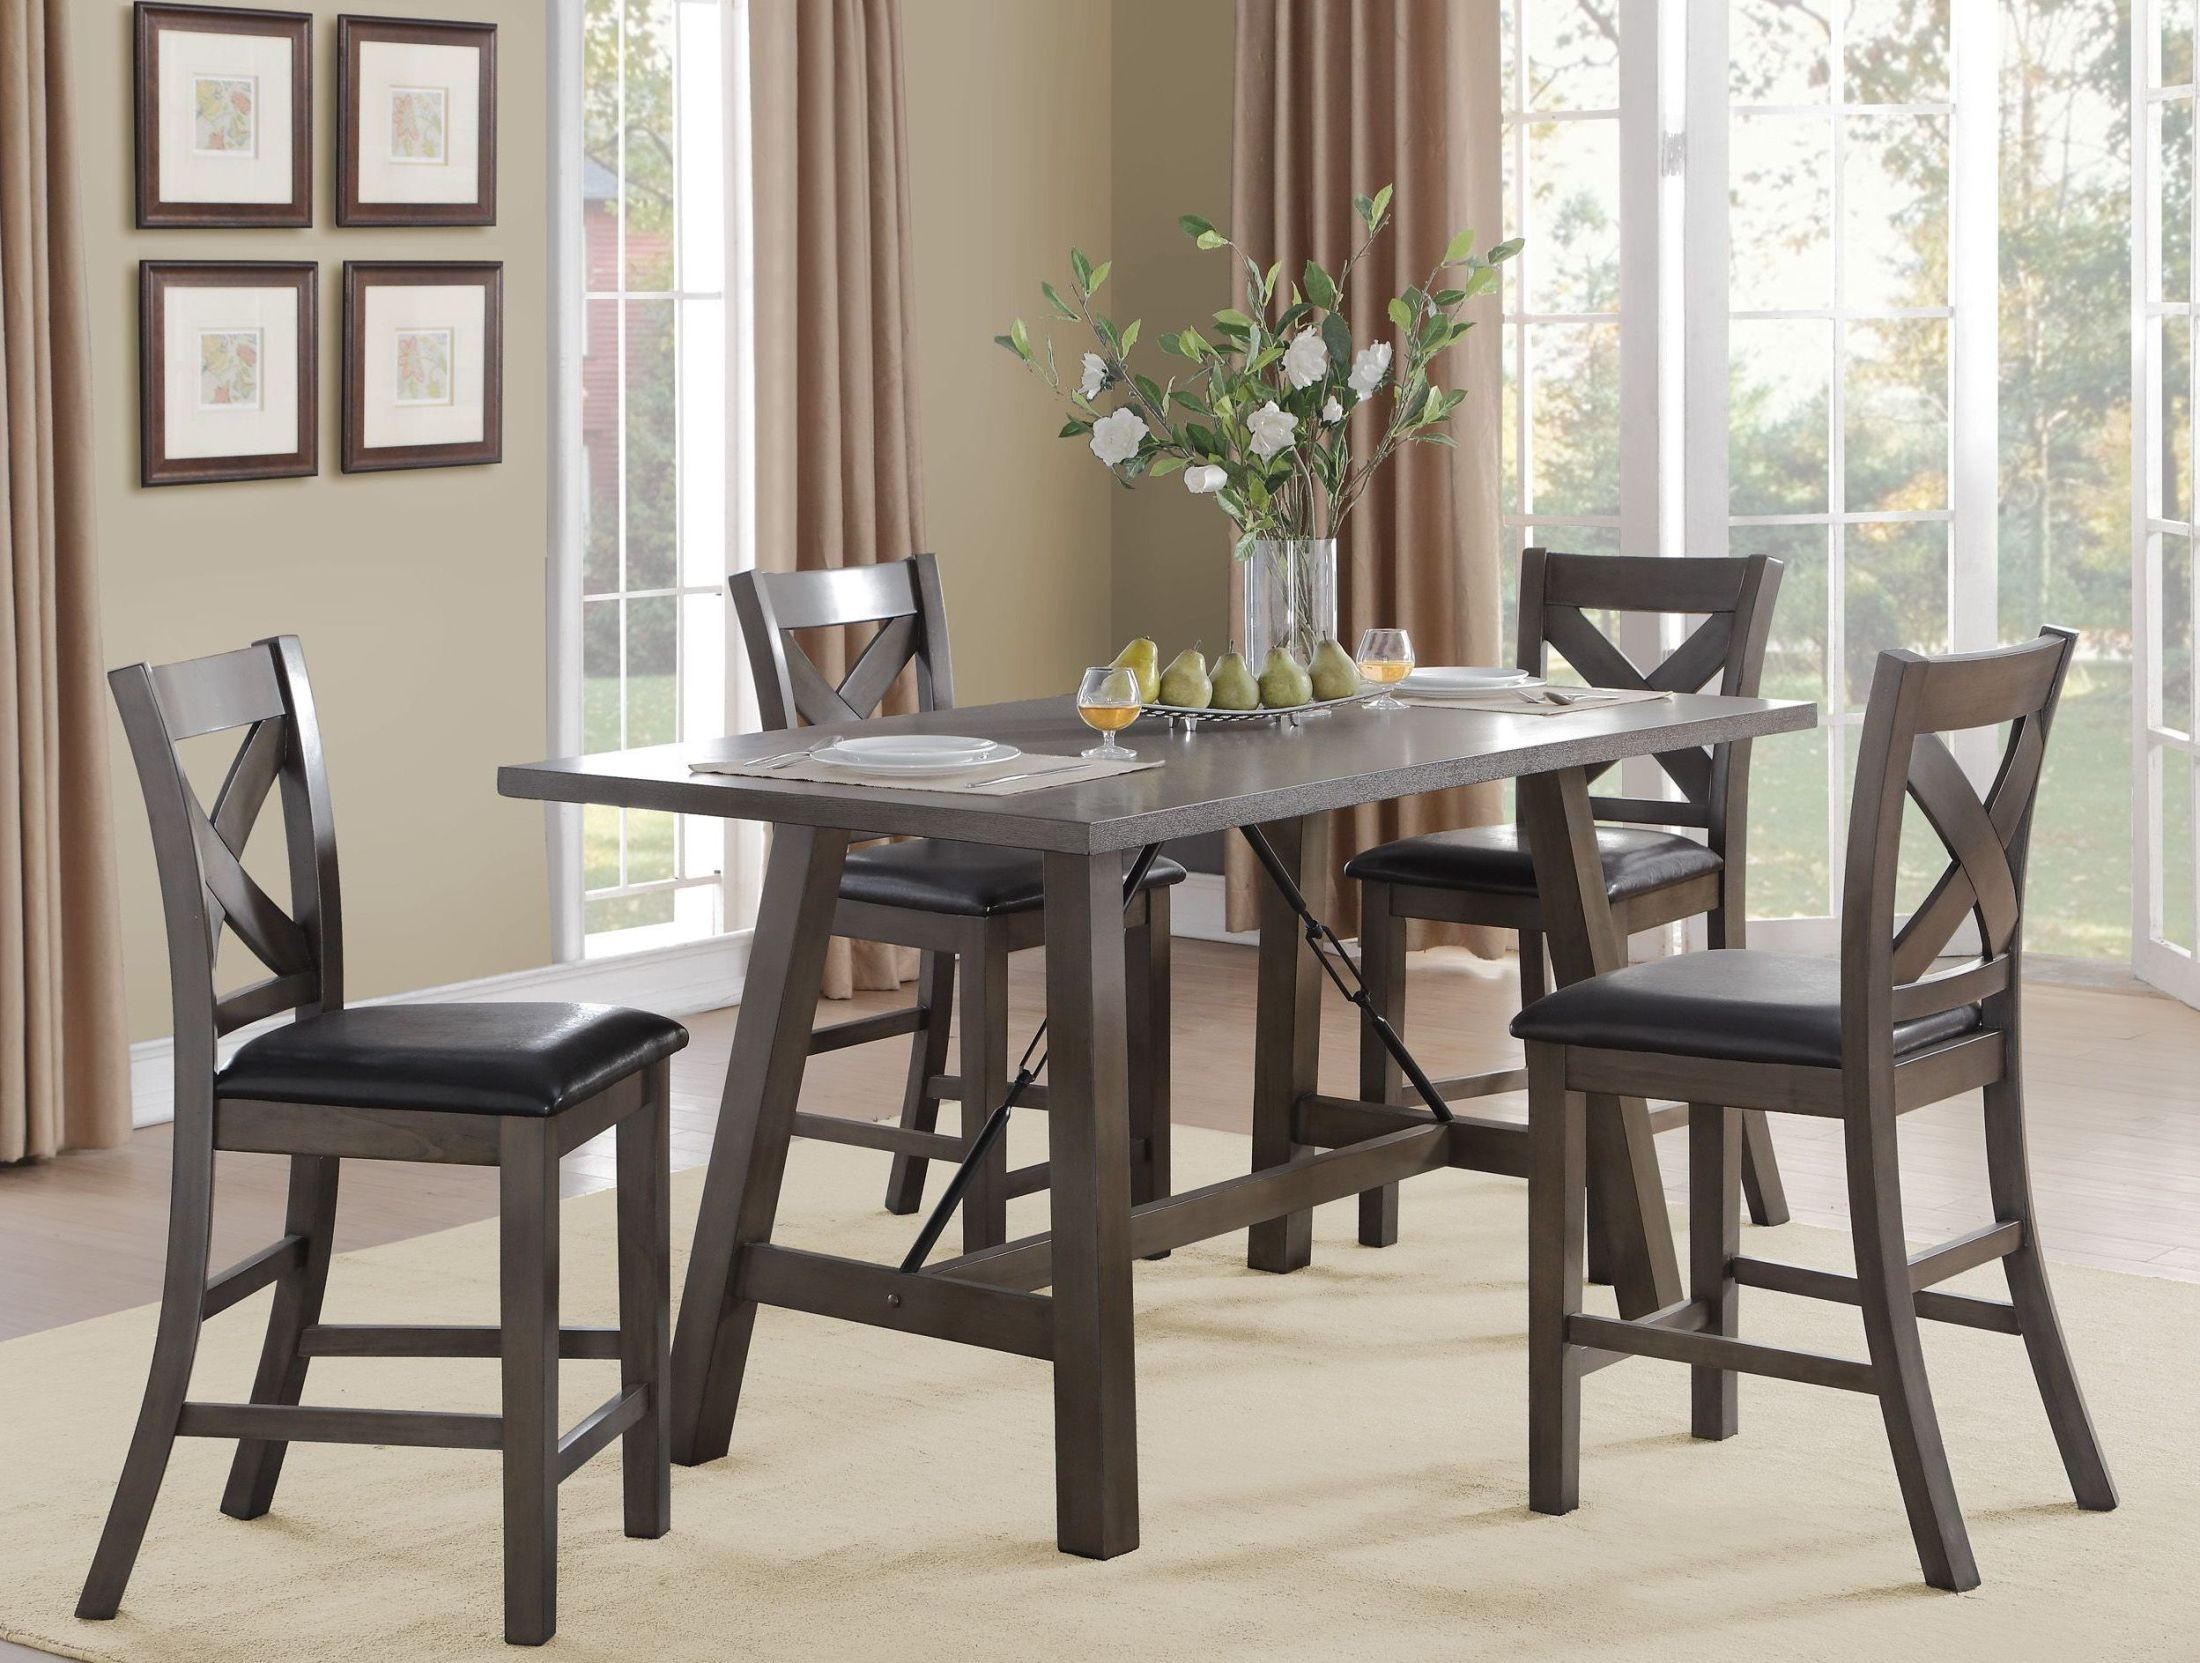 Seaford black counter height dining room set from for Black dining room set